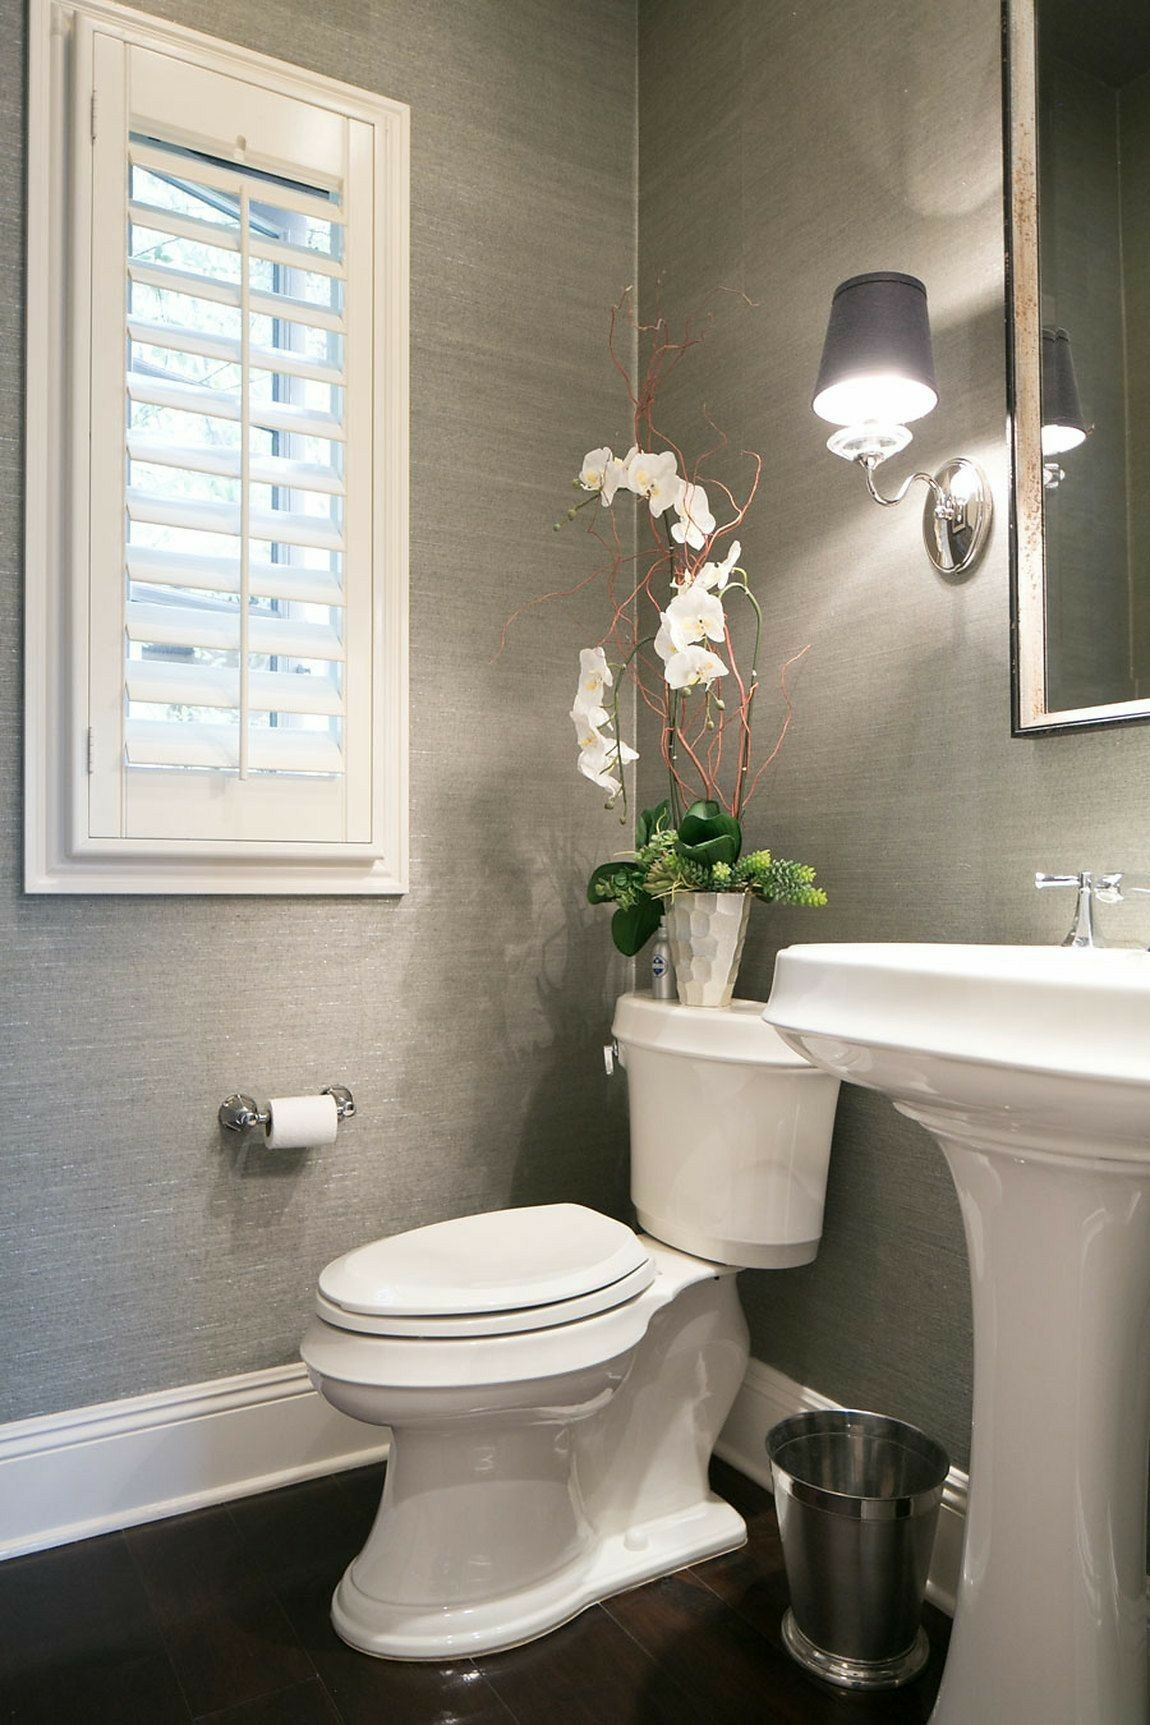 Thinking about fixing up the bathroom? Look no further, at Exeter